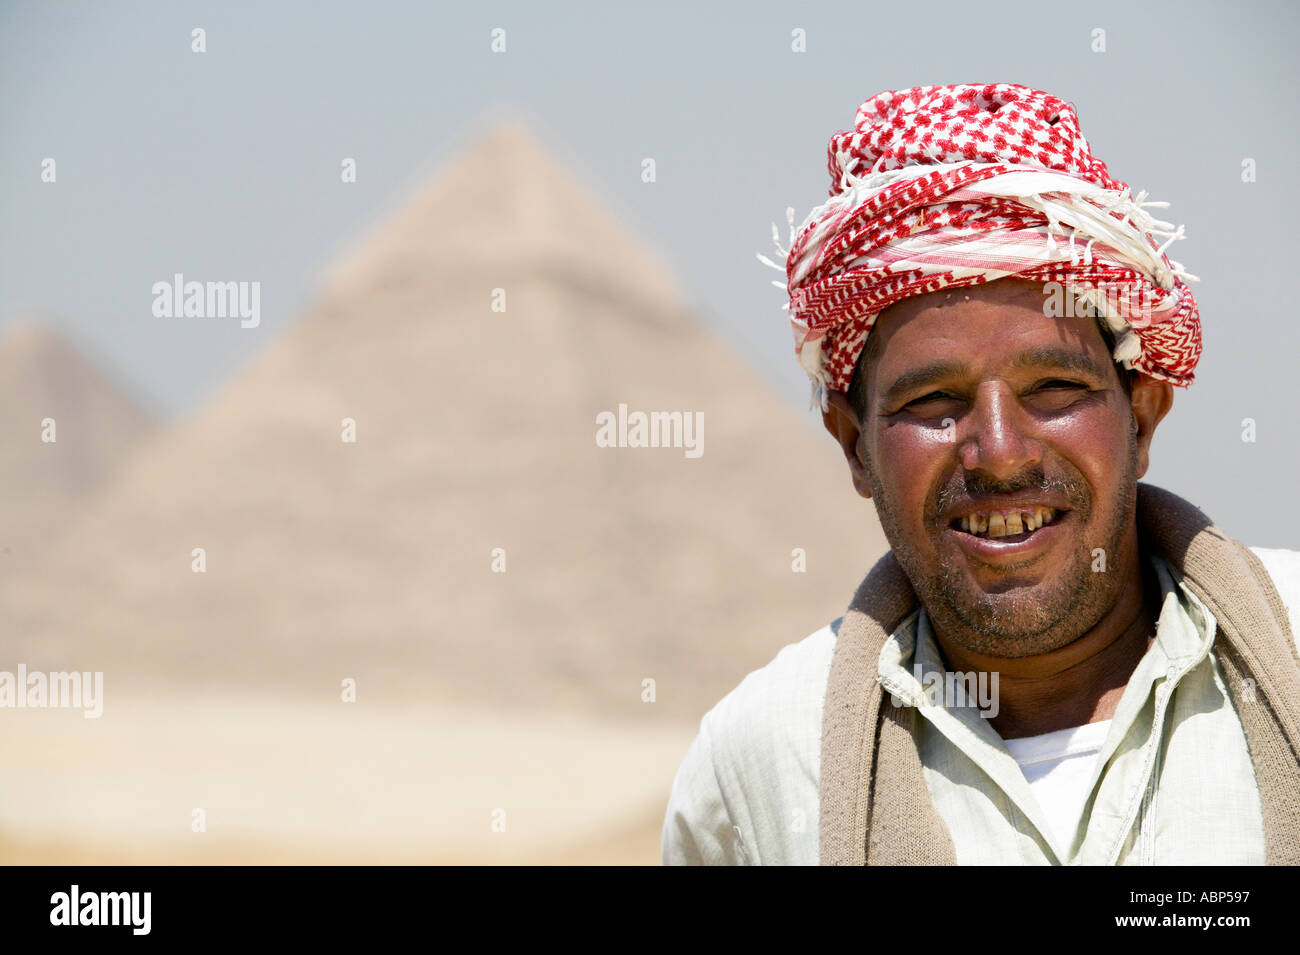 Abp597 camel and owner at giza pyramids cairo egypt model release